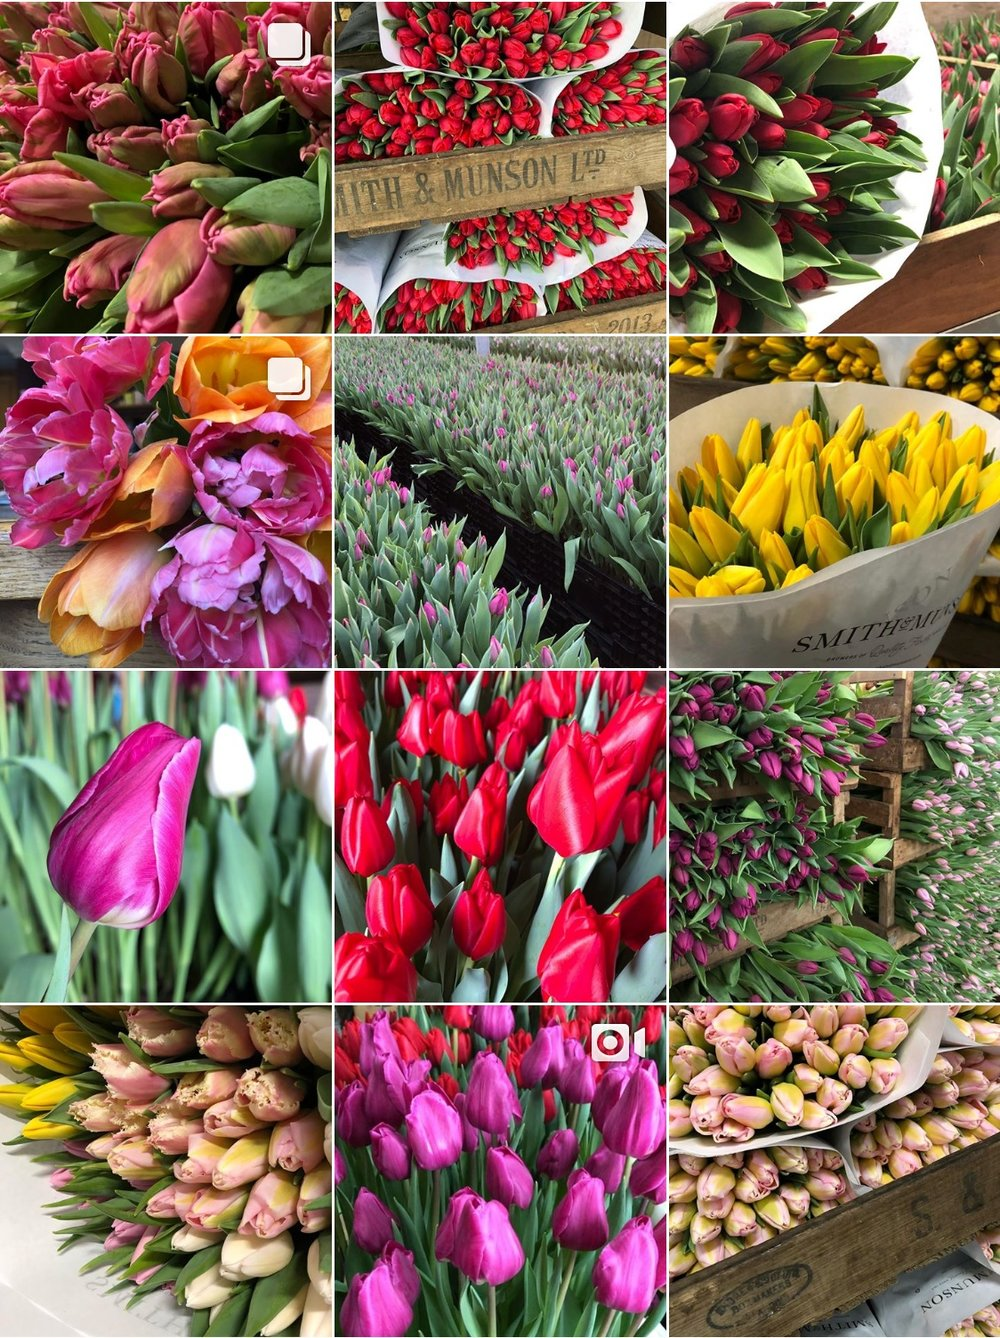 Why should people buy British? - When you buy British, you are supporting a British company, that employs local people, it's a company who loves what they do. With our flowers they have been grown in the U.K. with love and care, by a family who wants to share that with everyone.